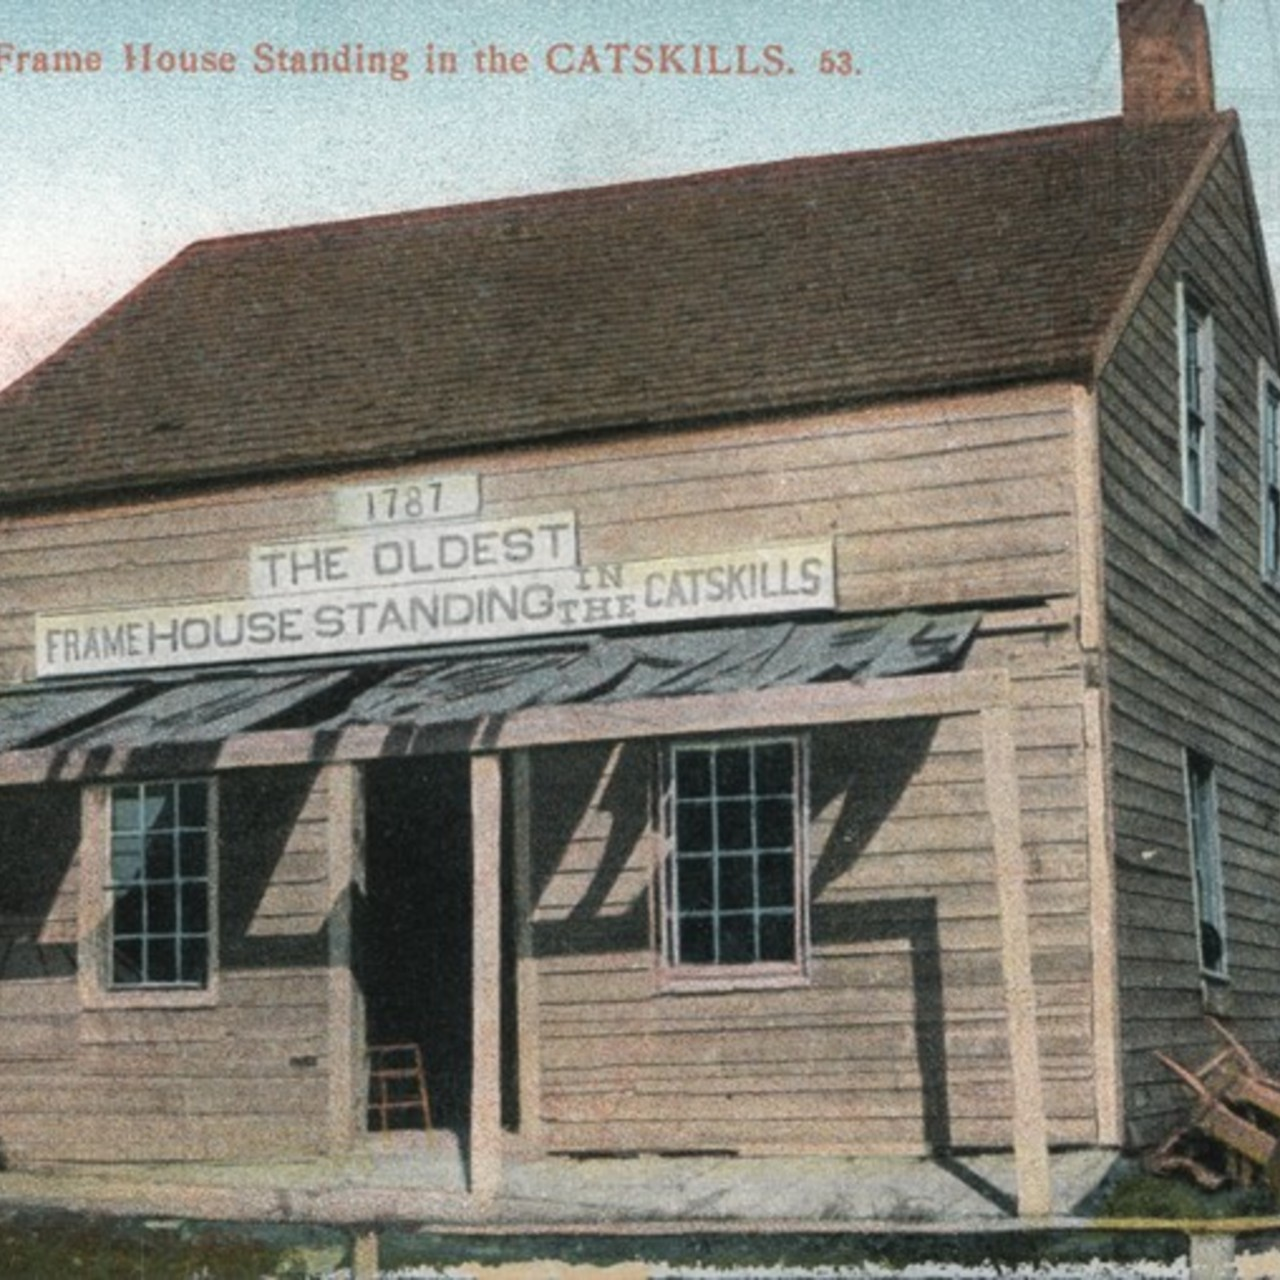 The Oldest Frame House Standing in the Catskills